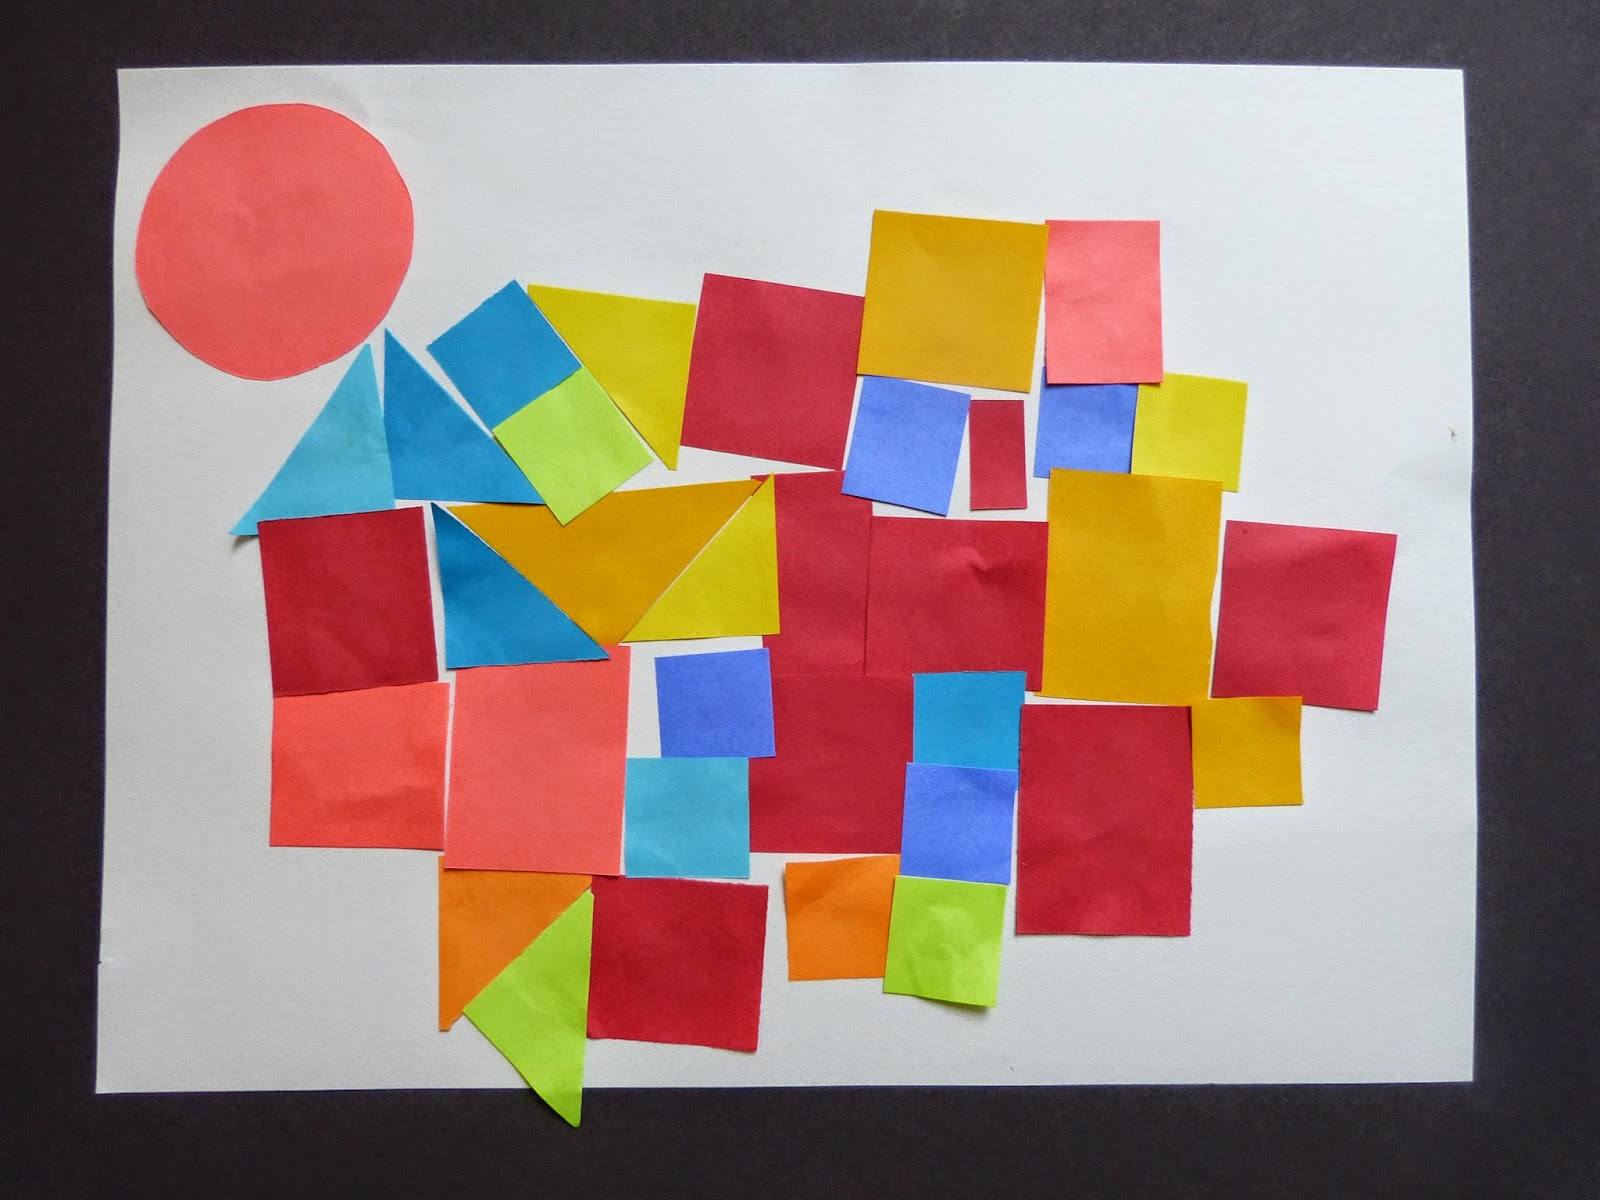 Exploring Paul Klee's Castle and Sun in preschool with block play and art.